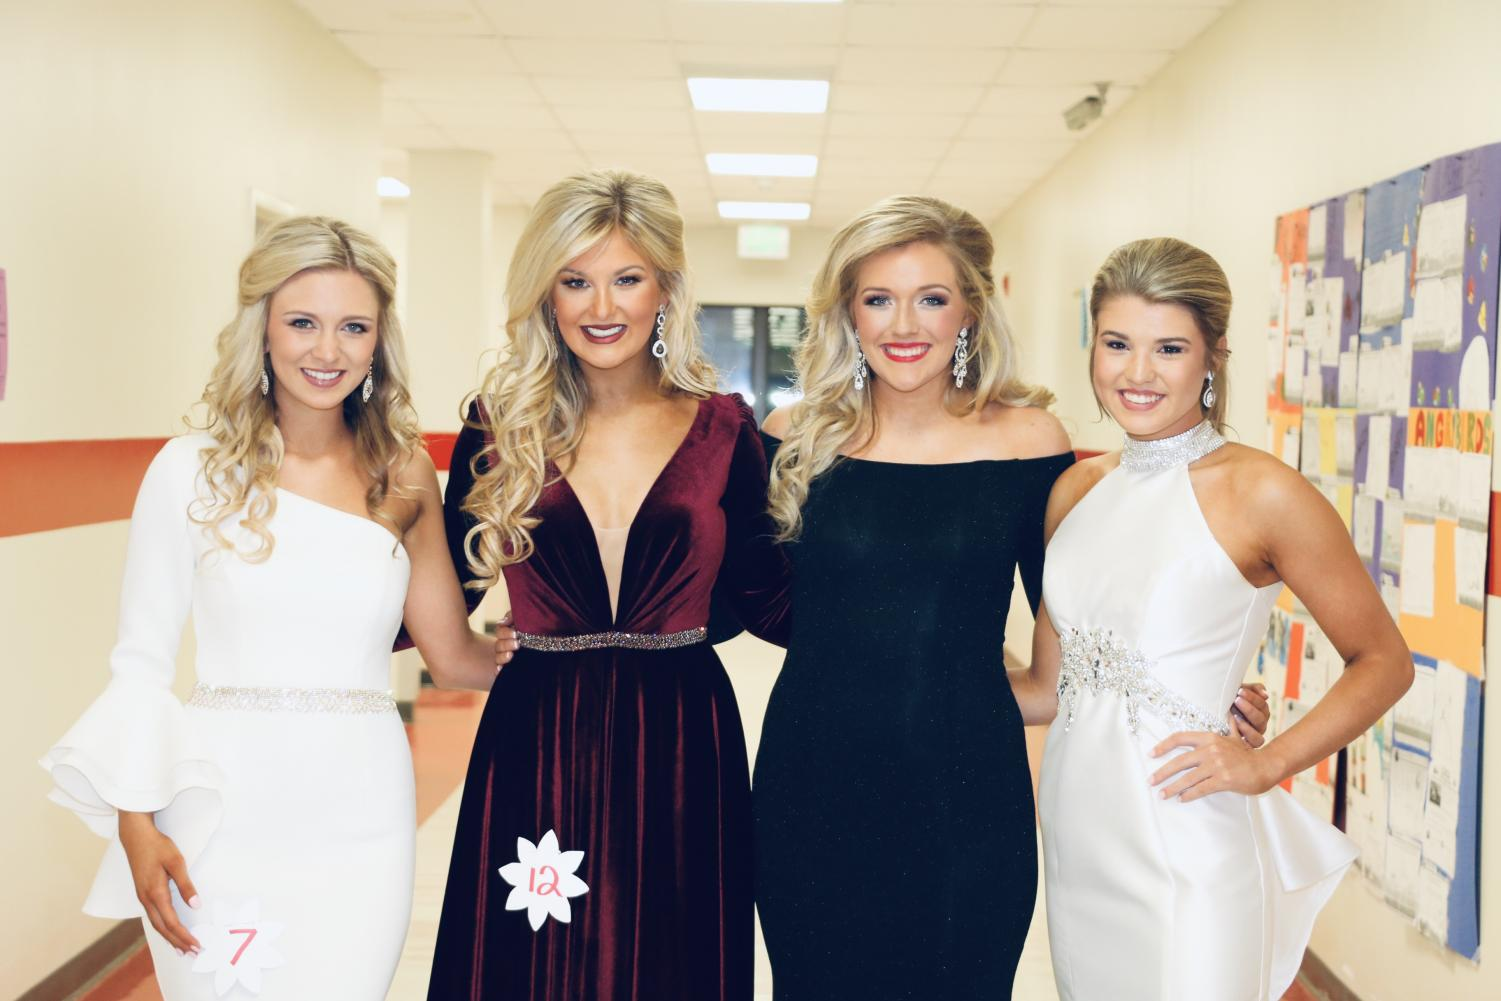 From left: Morgan James, Alexa Whitley, Olivia Cornish, and Baylee Rose